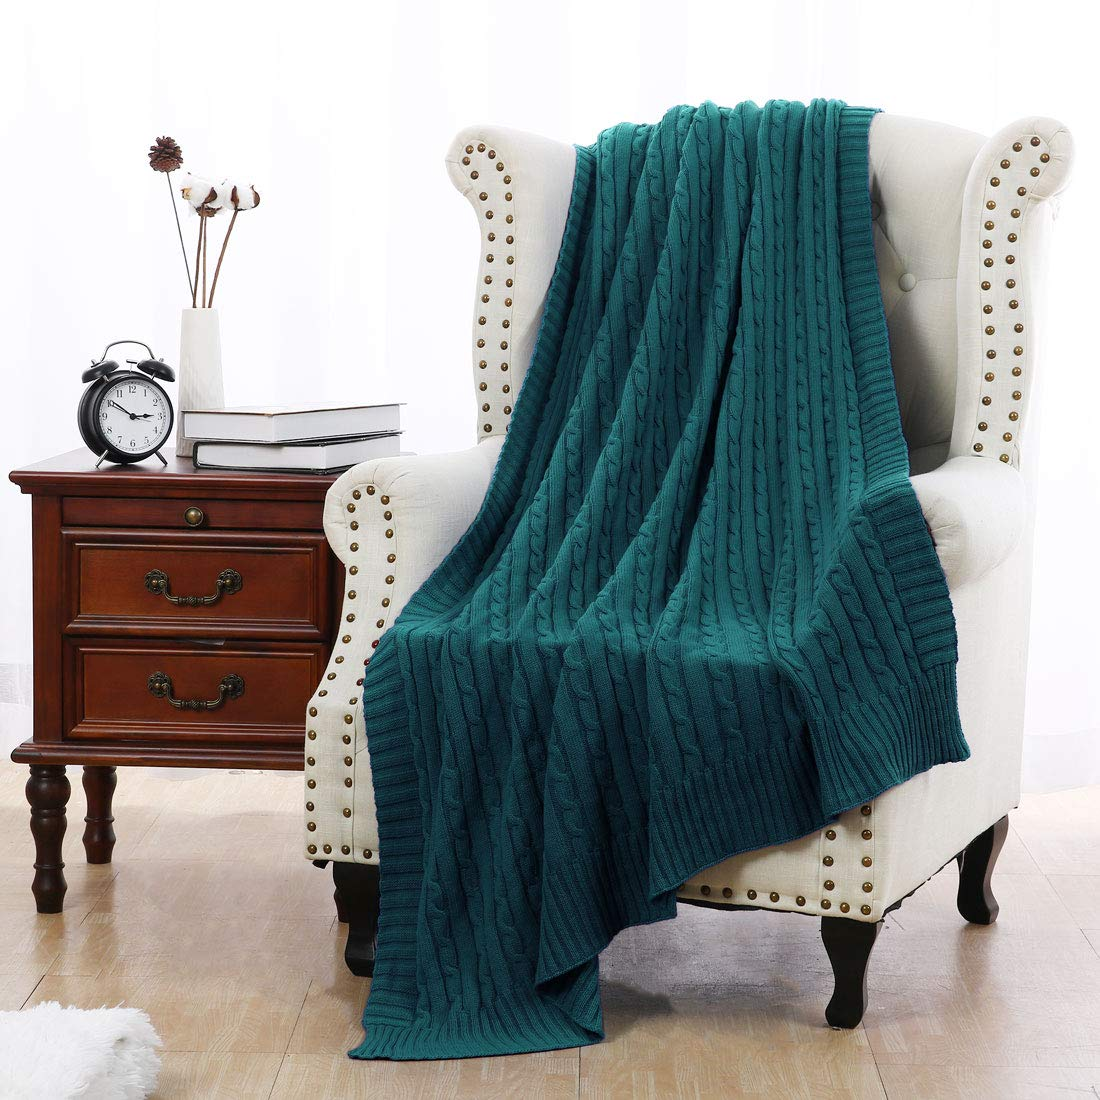 70 x 78 Teal Blue Full uxcell Cotton Cable Knit Throw Blanket Super Soft Throw Couch Covers Knitted Blankets for Sofa Bed Teal Blue Full 70 x 78